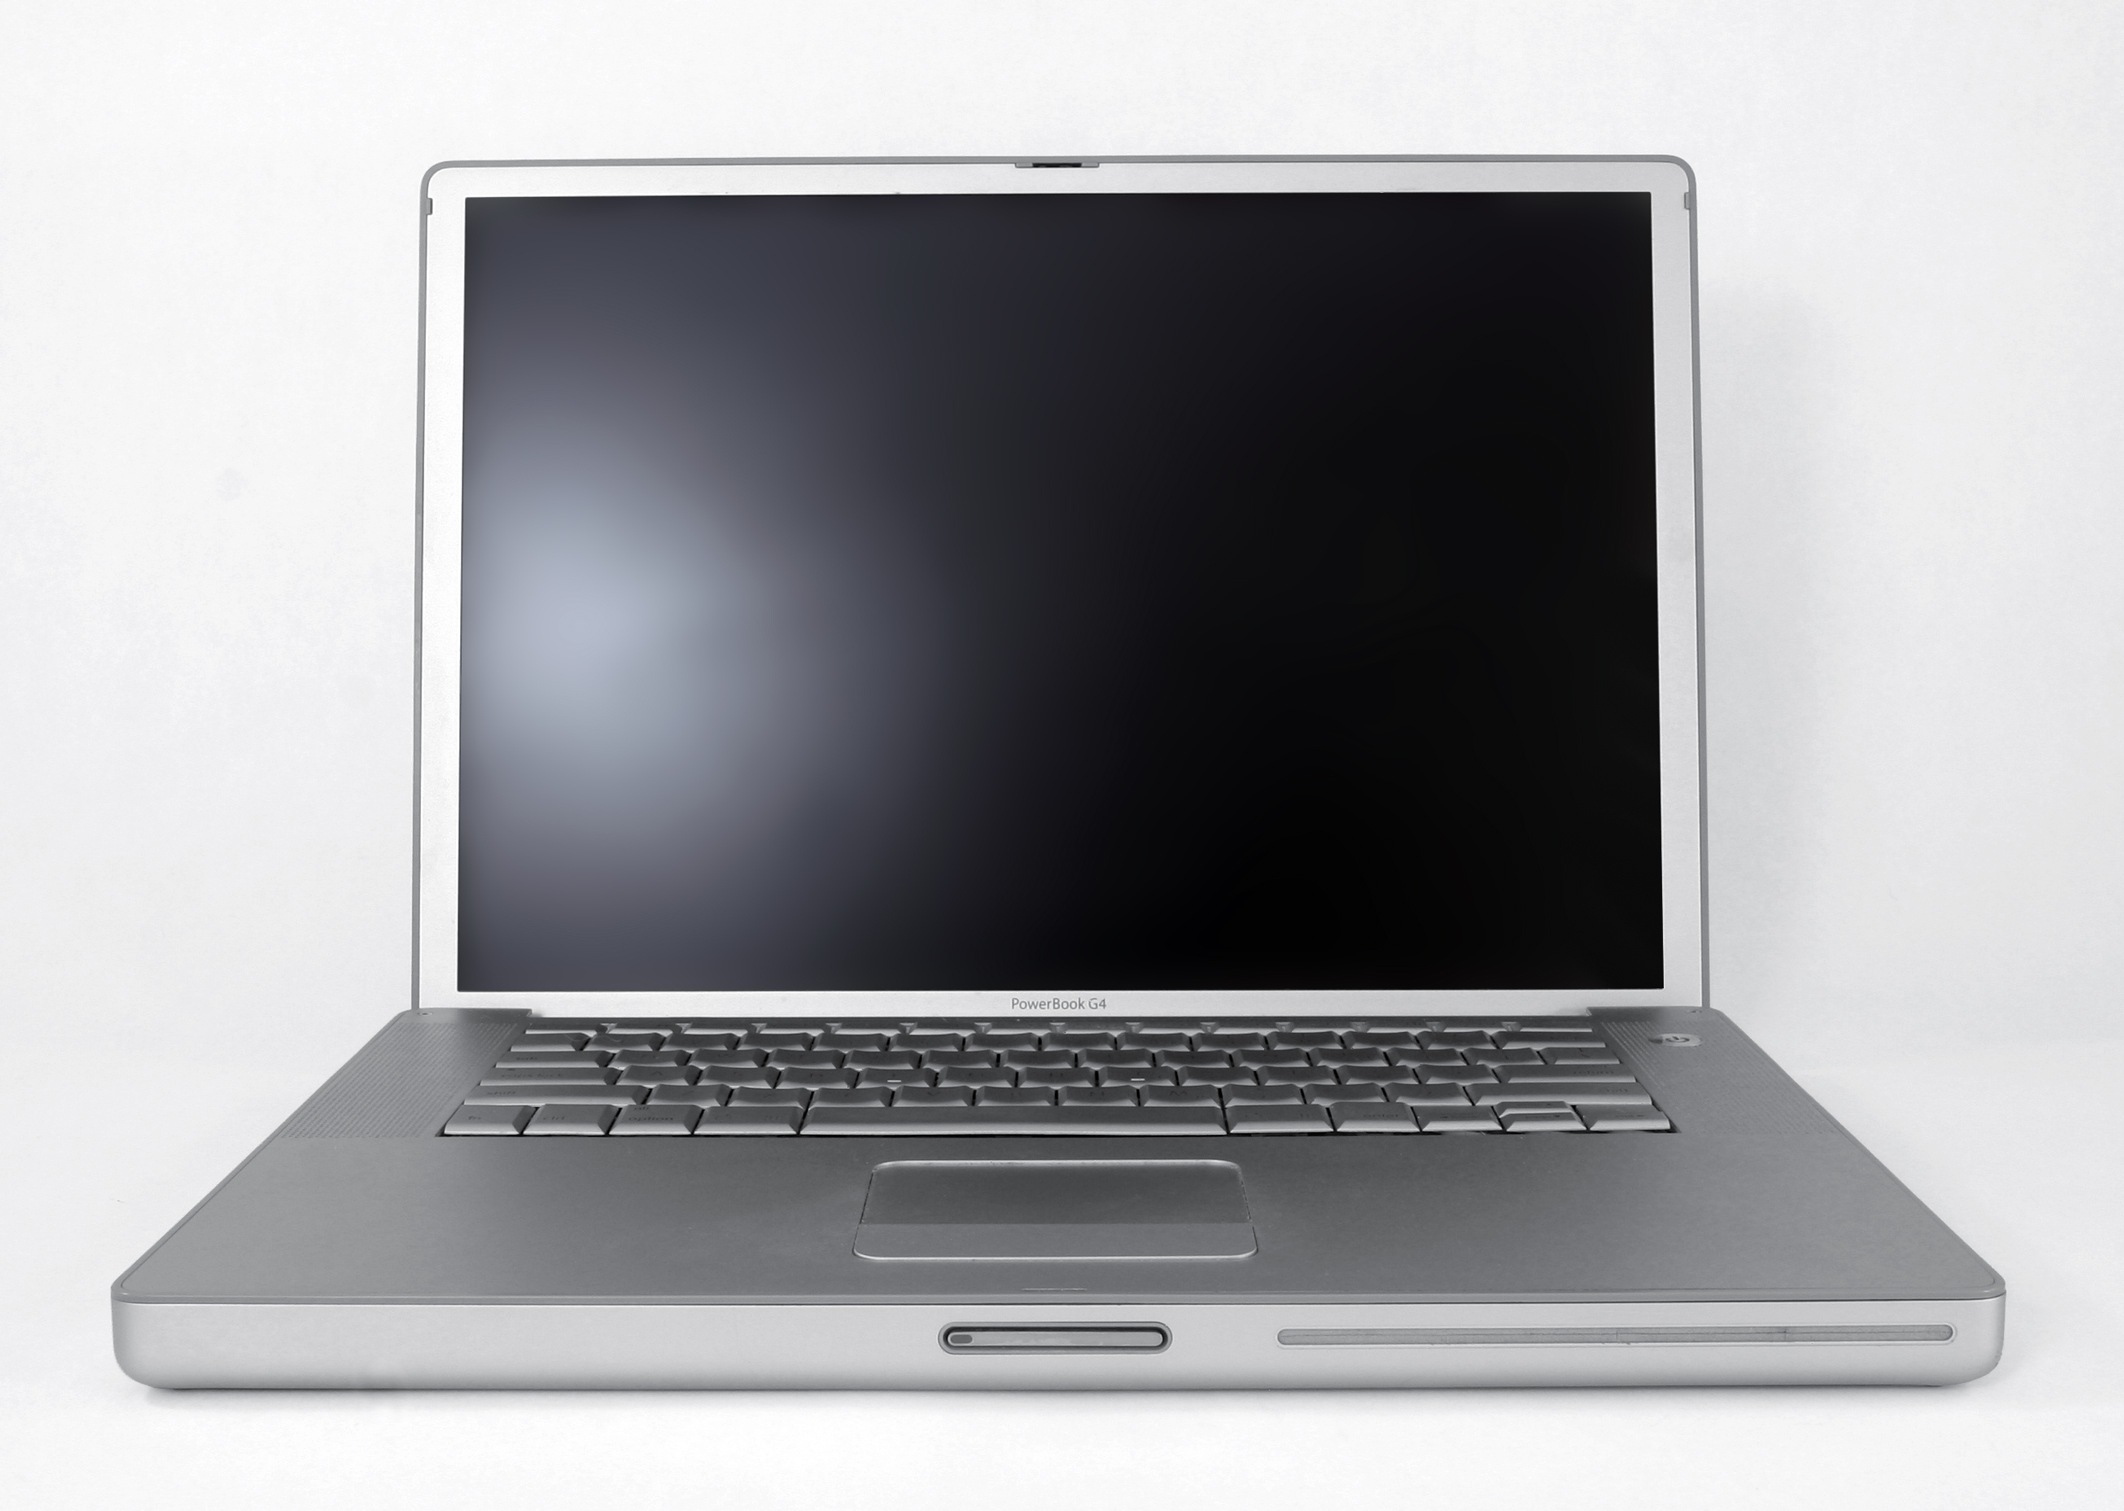 https://i1.wp.com/upload.wikimedia.org/wikipedia/commons/f/f7/PowerBook_redjar.jpg